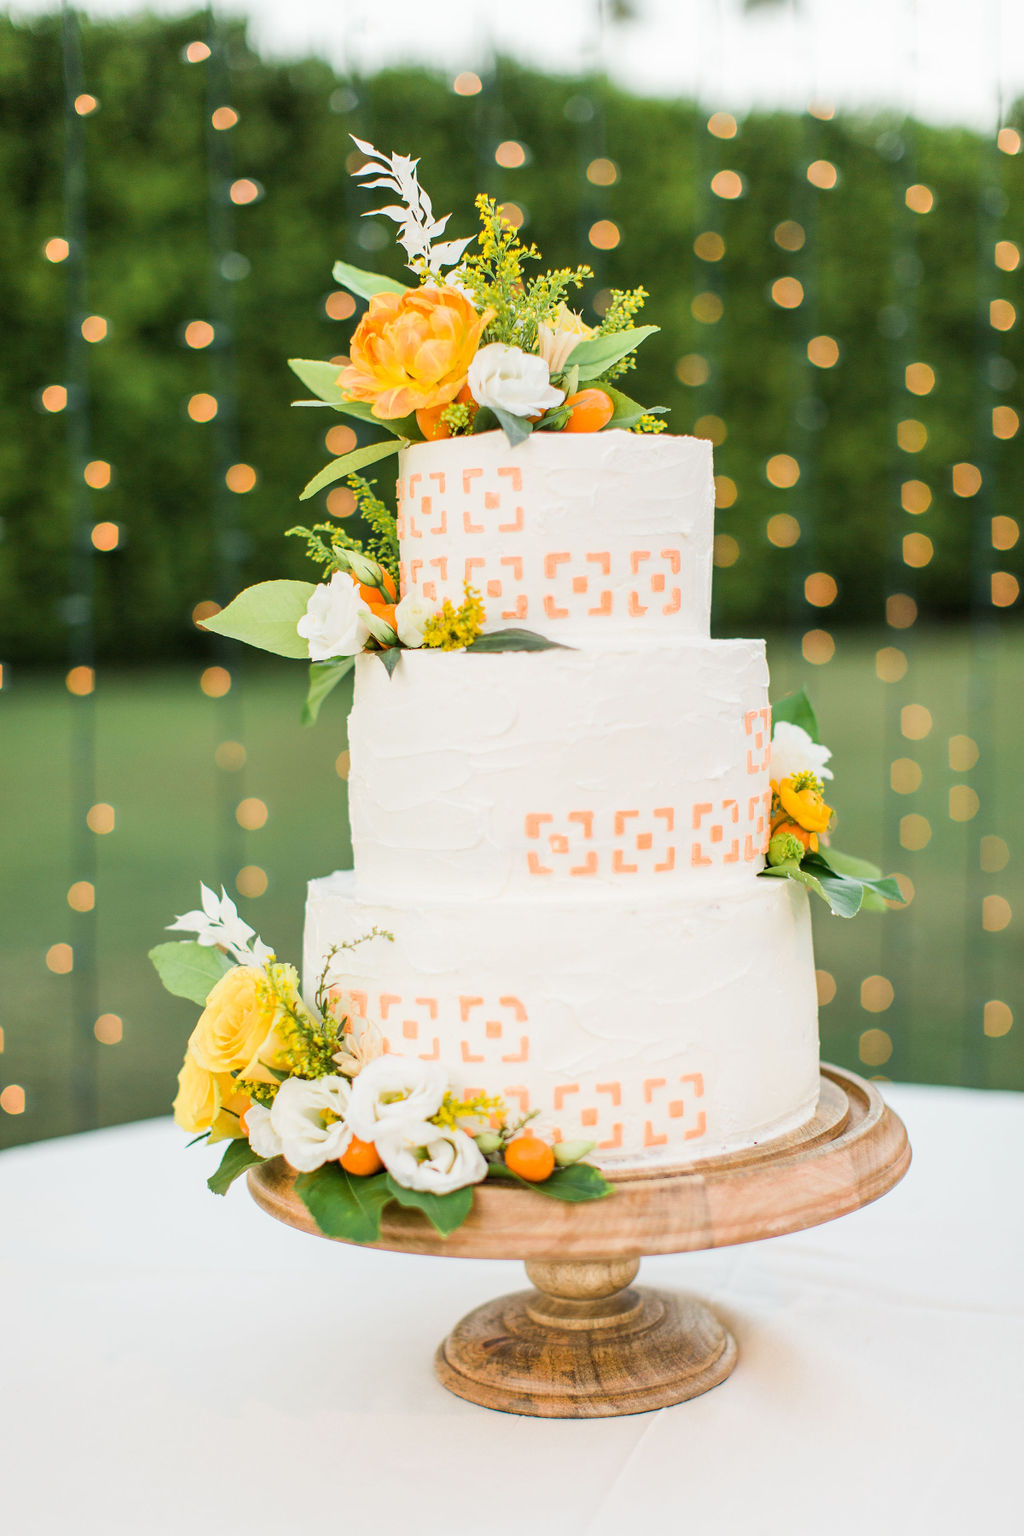 white wedding cake with citrus colored accents and flowers